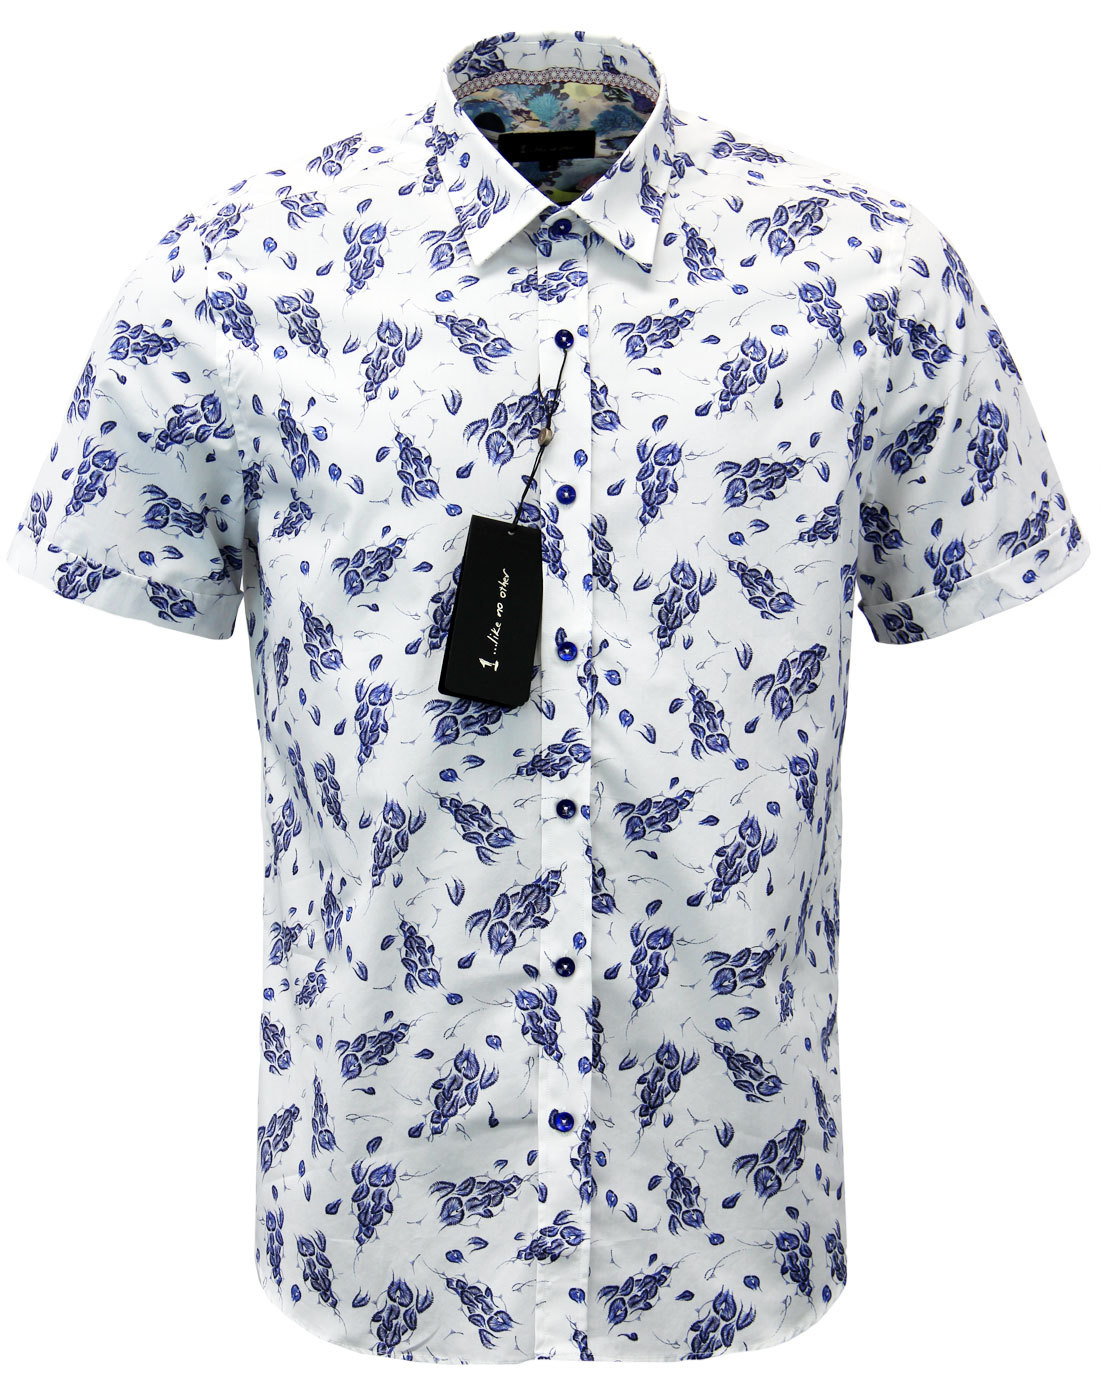 Barnet 1 LIKE NO OTHER Floral Sea Creature Shirt